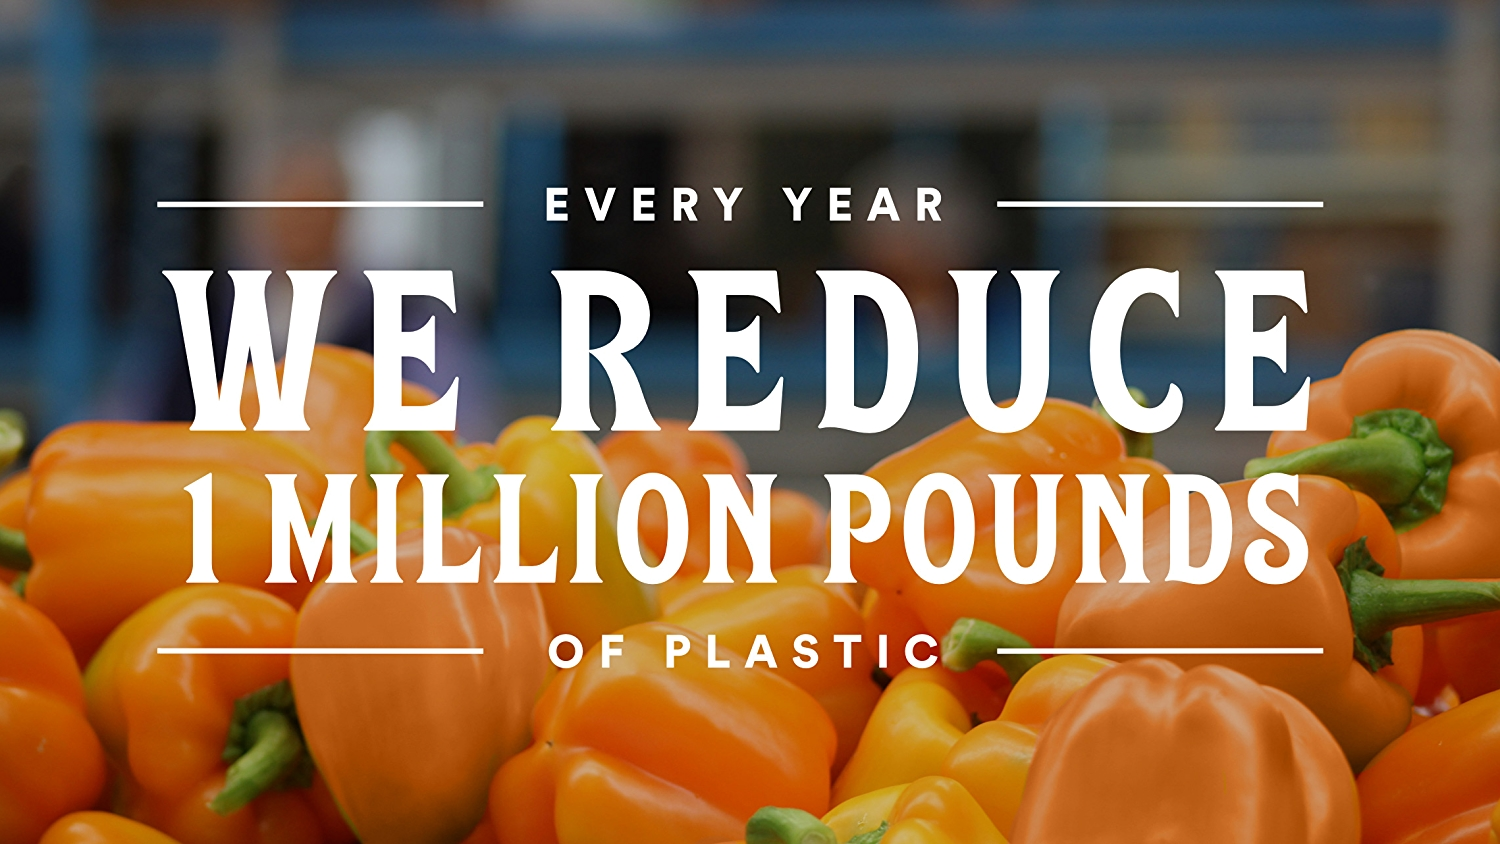 Every Year We Reduce 1 Million Pounds of Plastic